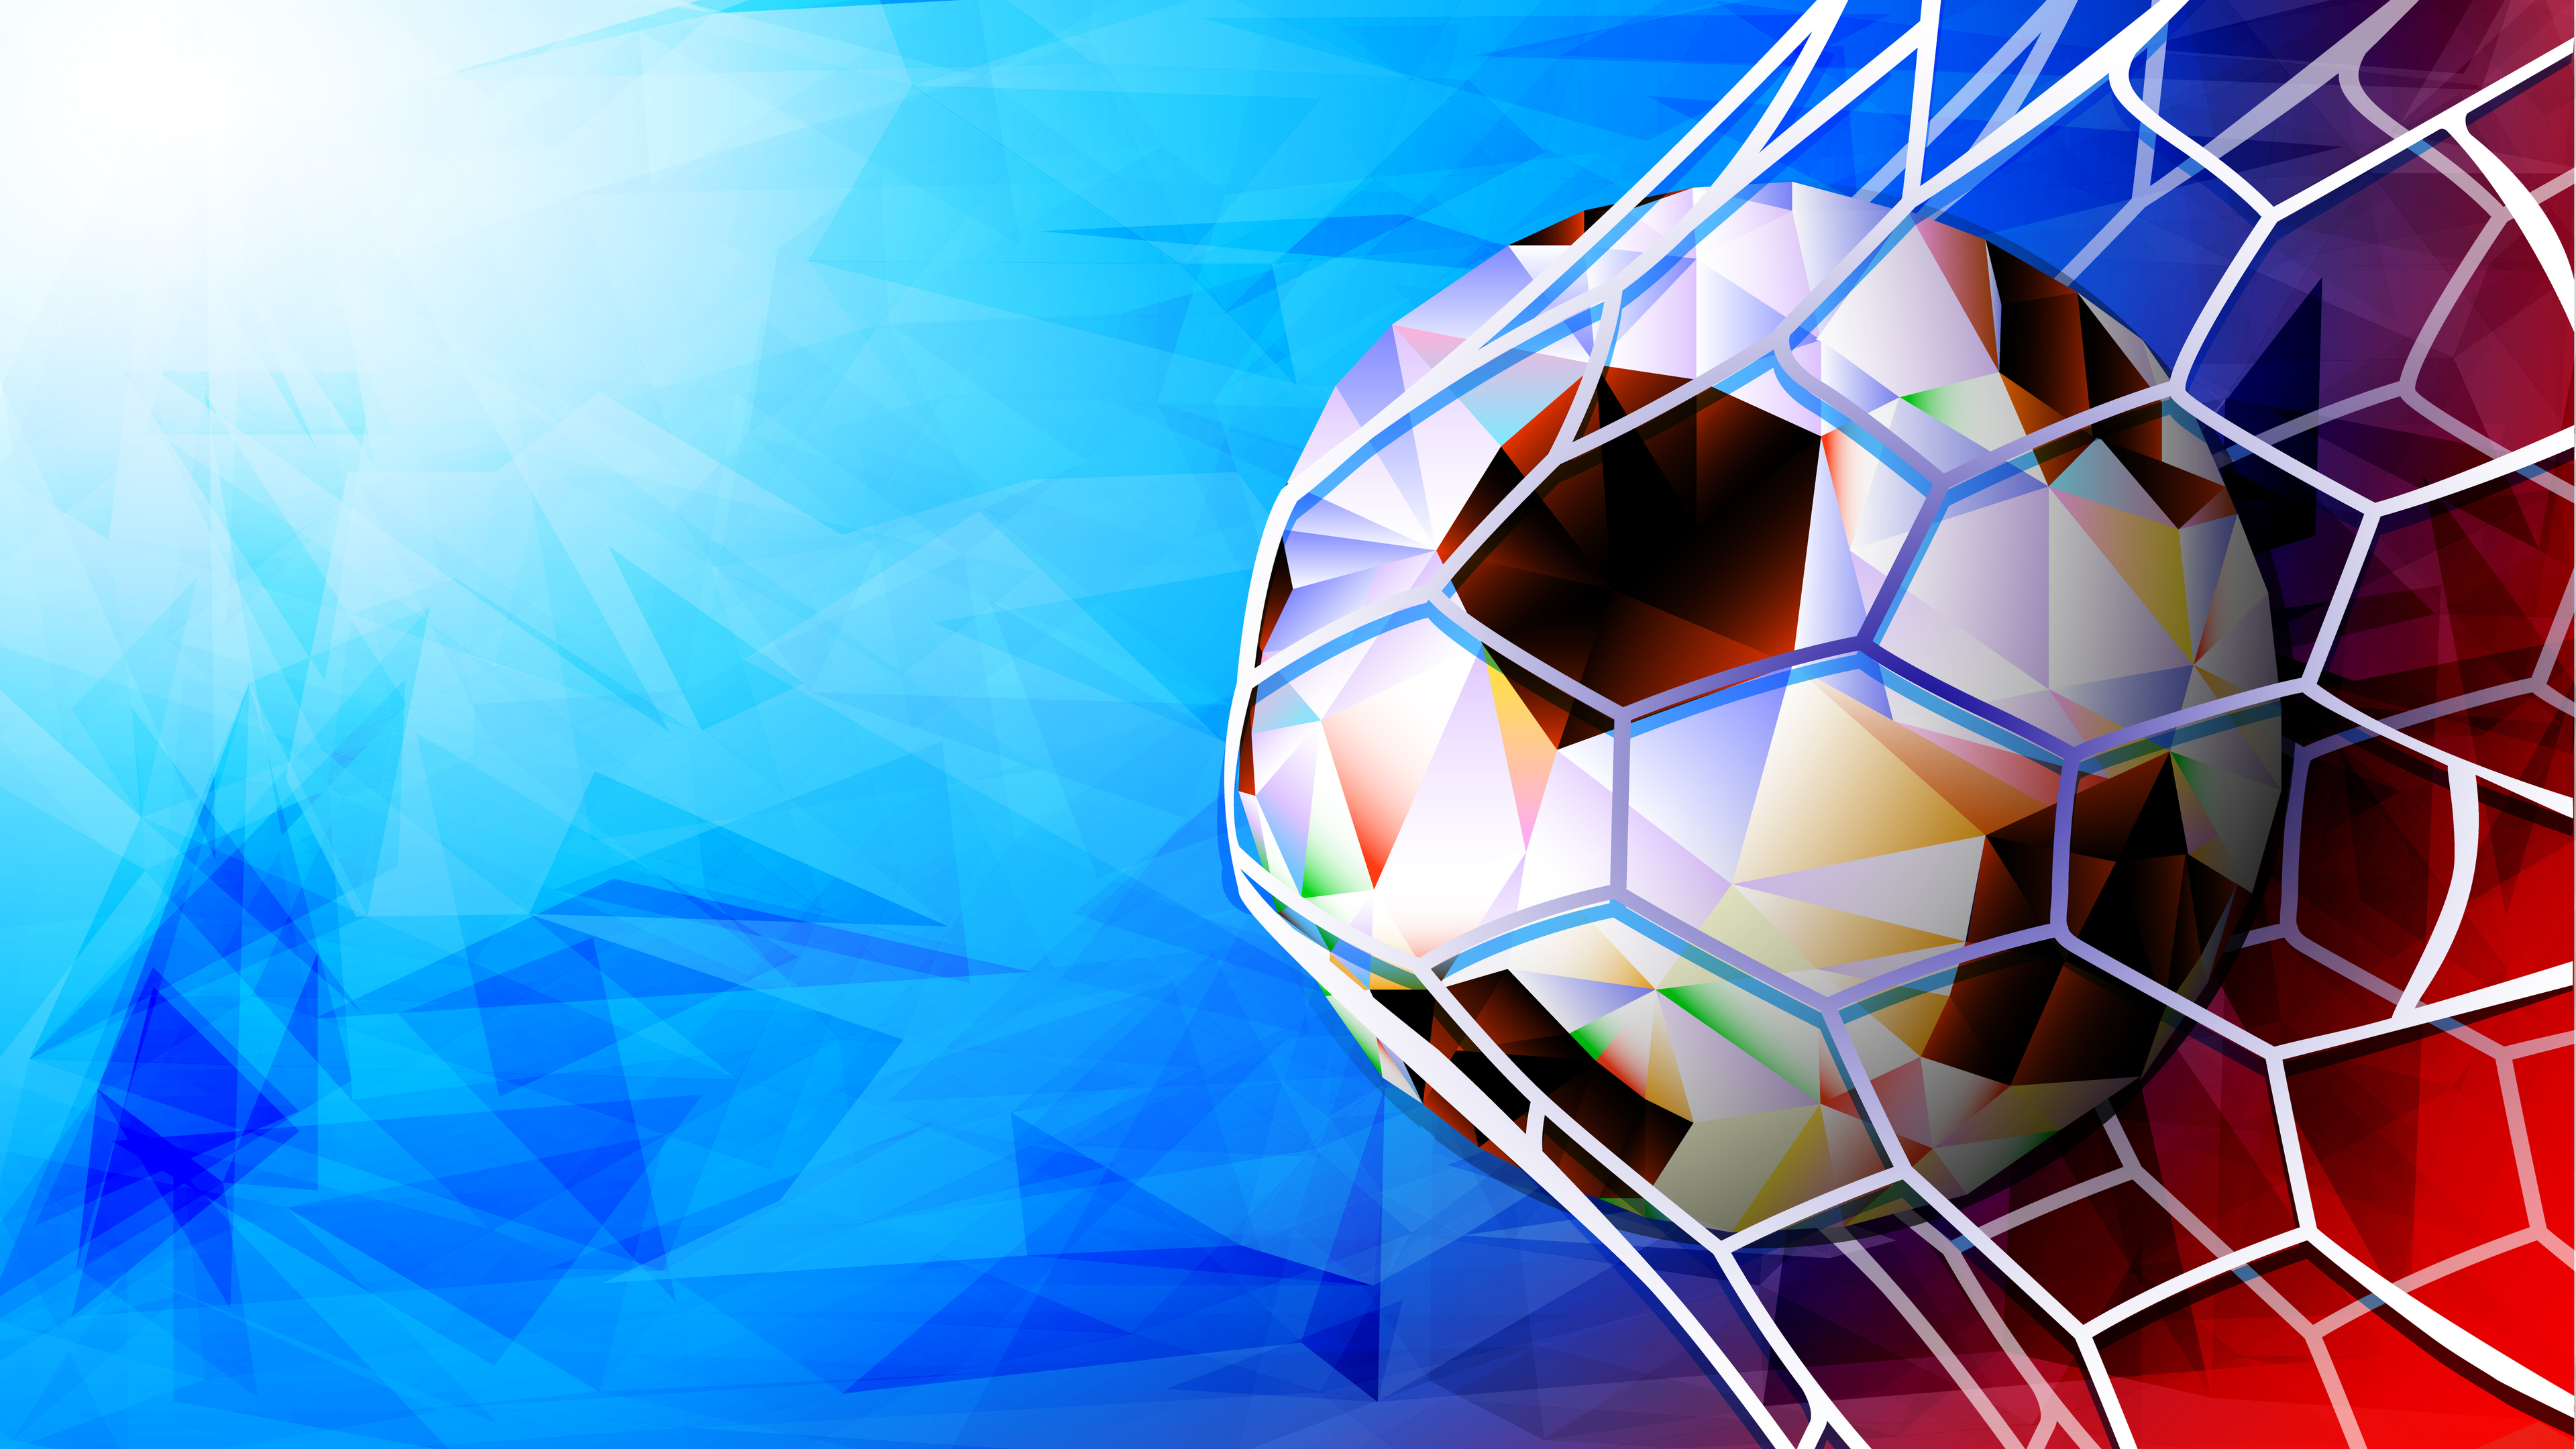 fifa world cup russia 2018 4k 5k 1538786886 - FIFA World Cup Russia 2018 4k 5k - hd-wallpapers, games wallpapers, football wallpapers, fifa world cup russia wallpapers, fifa wallpapers, 5k wallpapers, 4k-wallpapers, 2018 games wallpapers